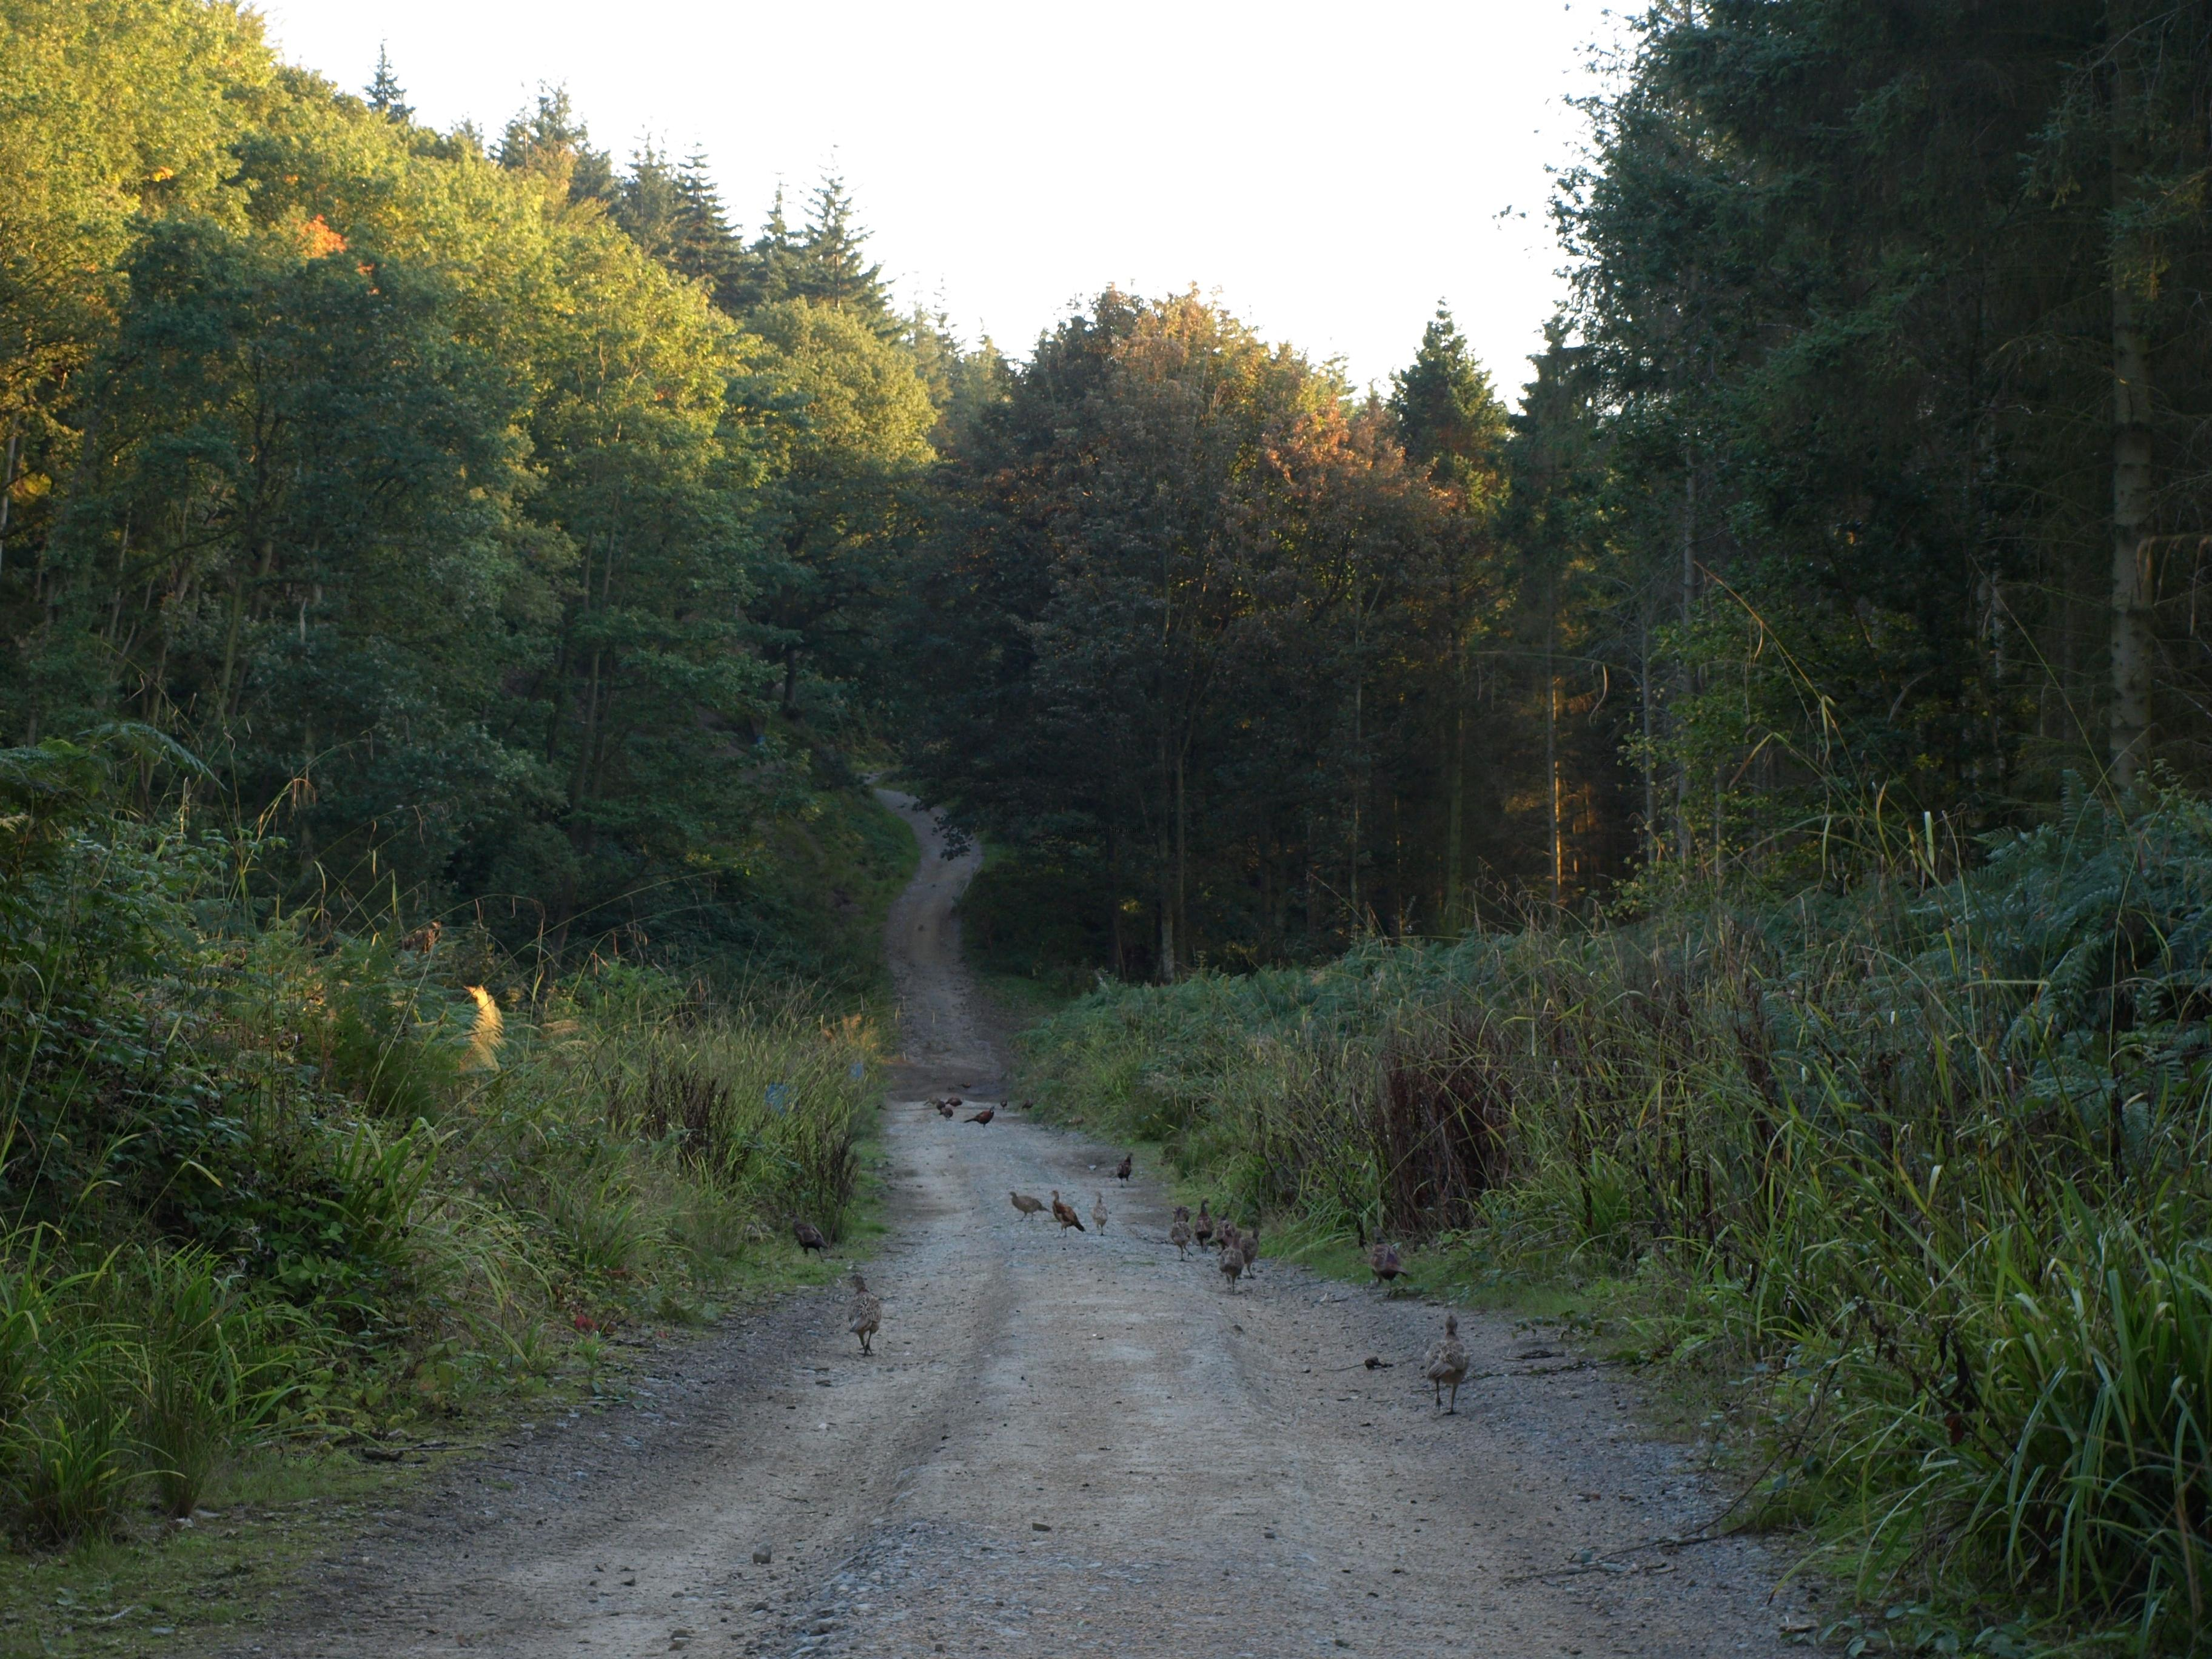 Pheasants on track - Arncliffe Wood - Osmotherly